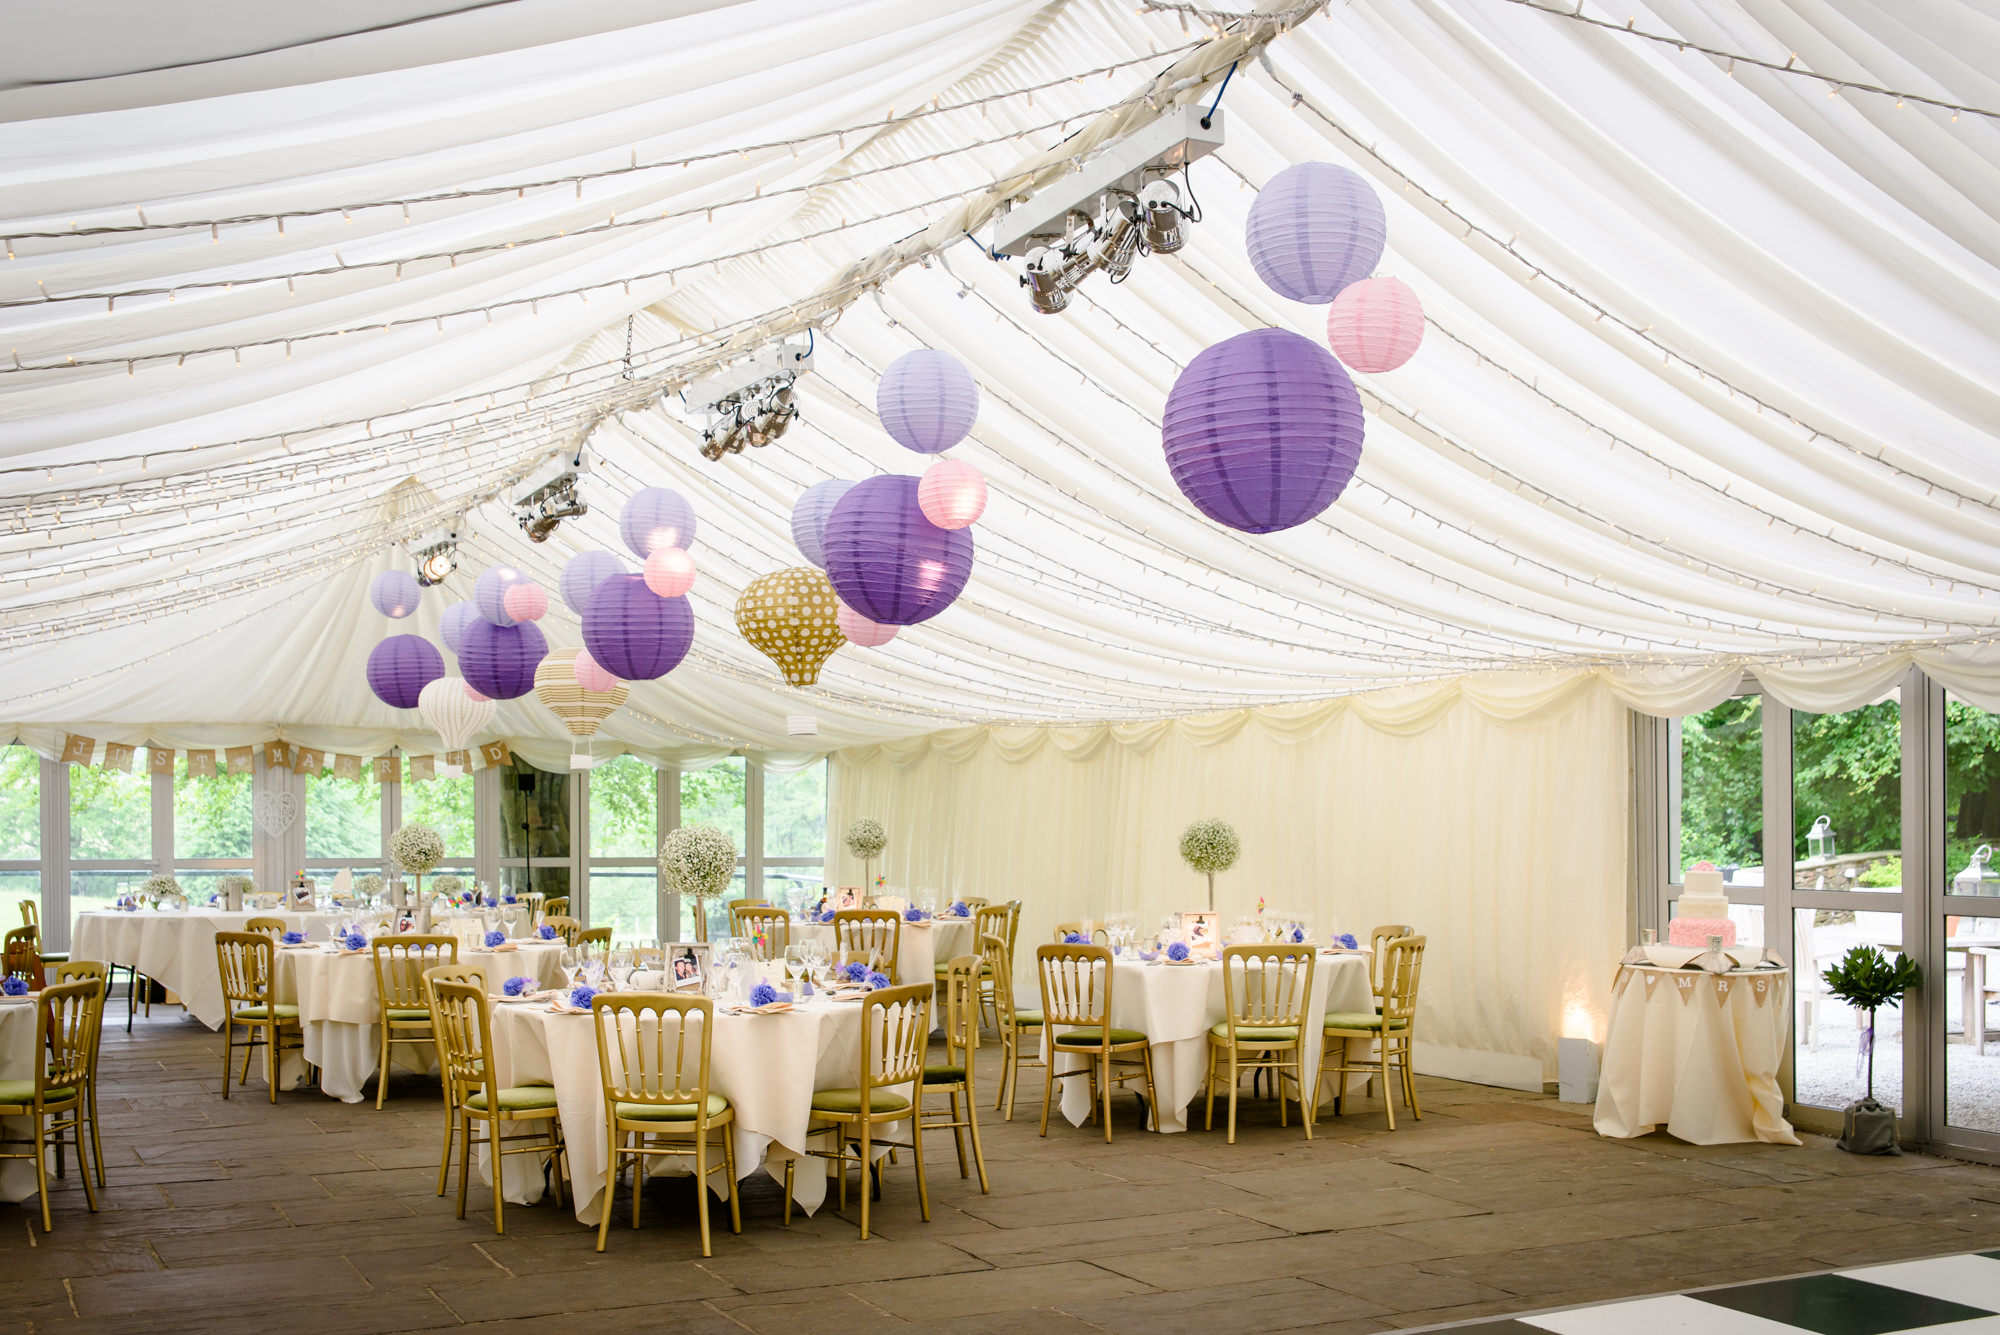 Wedding Marquee at The inn at Whitewell